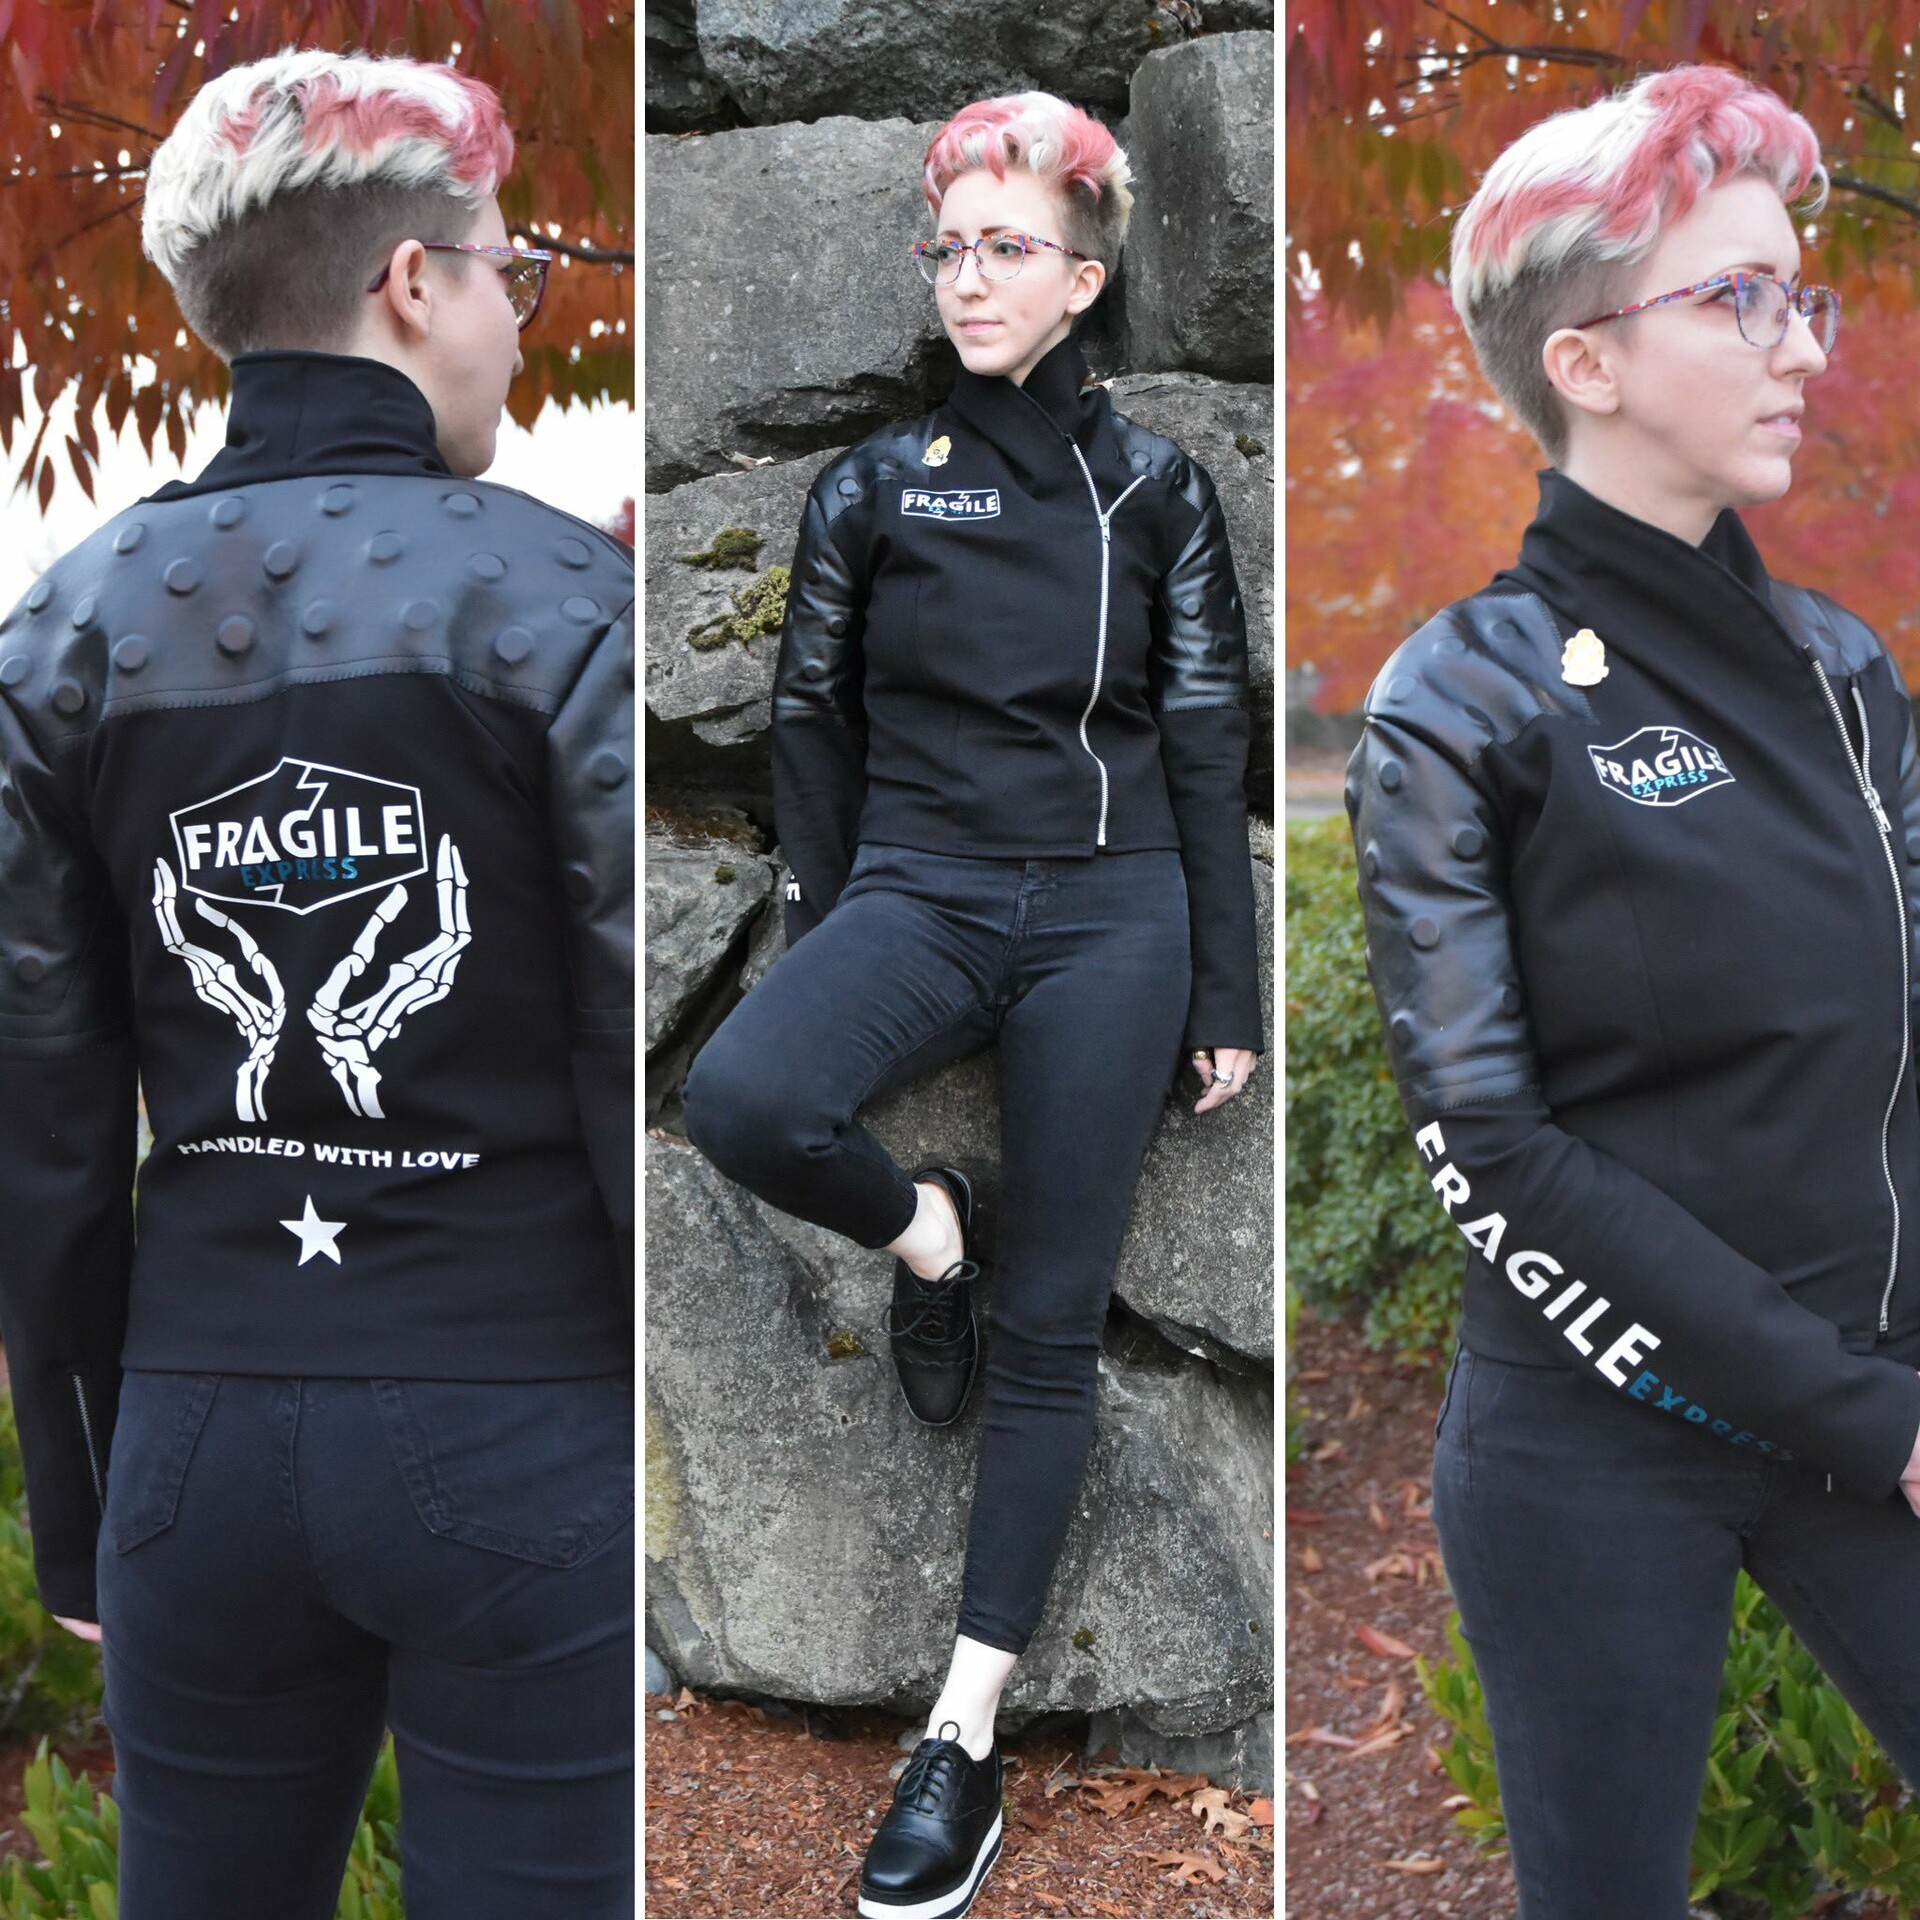 Melanie Bibko Death Stranding Fragile Jacket Fragile's father was the founder of fragile express, and when he died, the torch was passed down to her. melanie bibko death stranding fragile